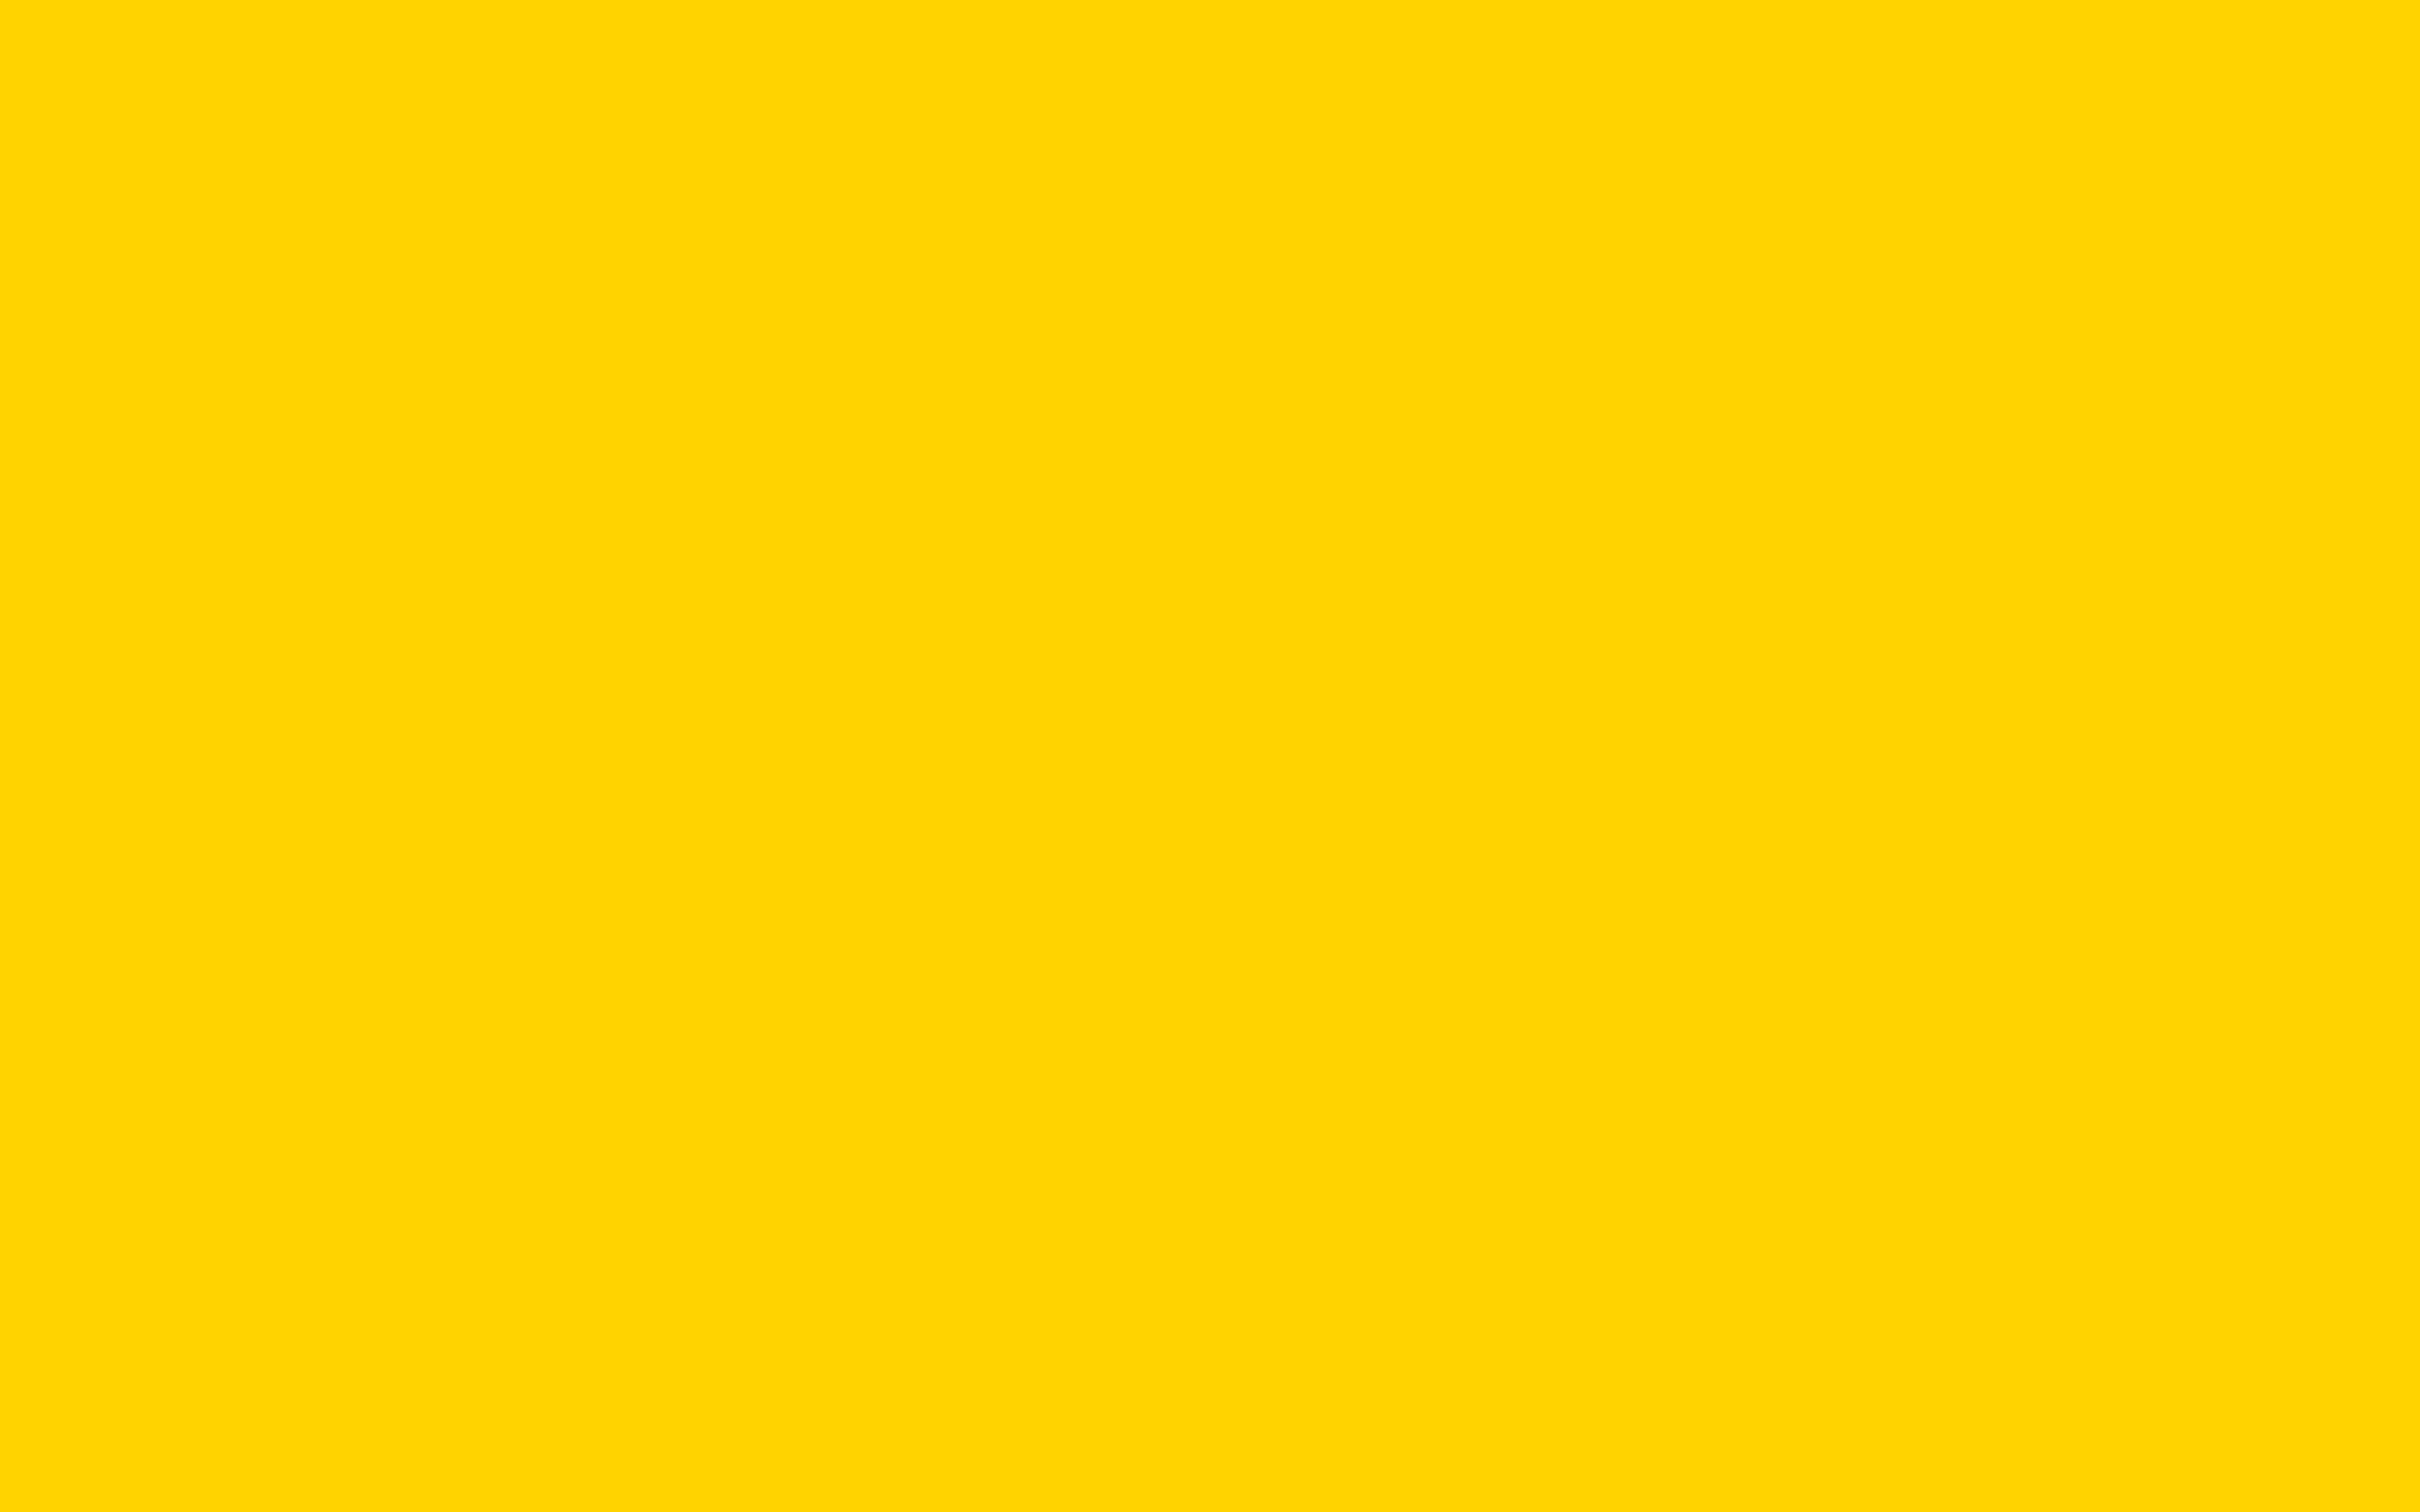 2560x1600 Cyber Yellow Solid Color Background